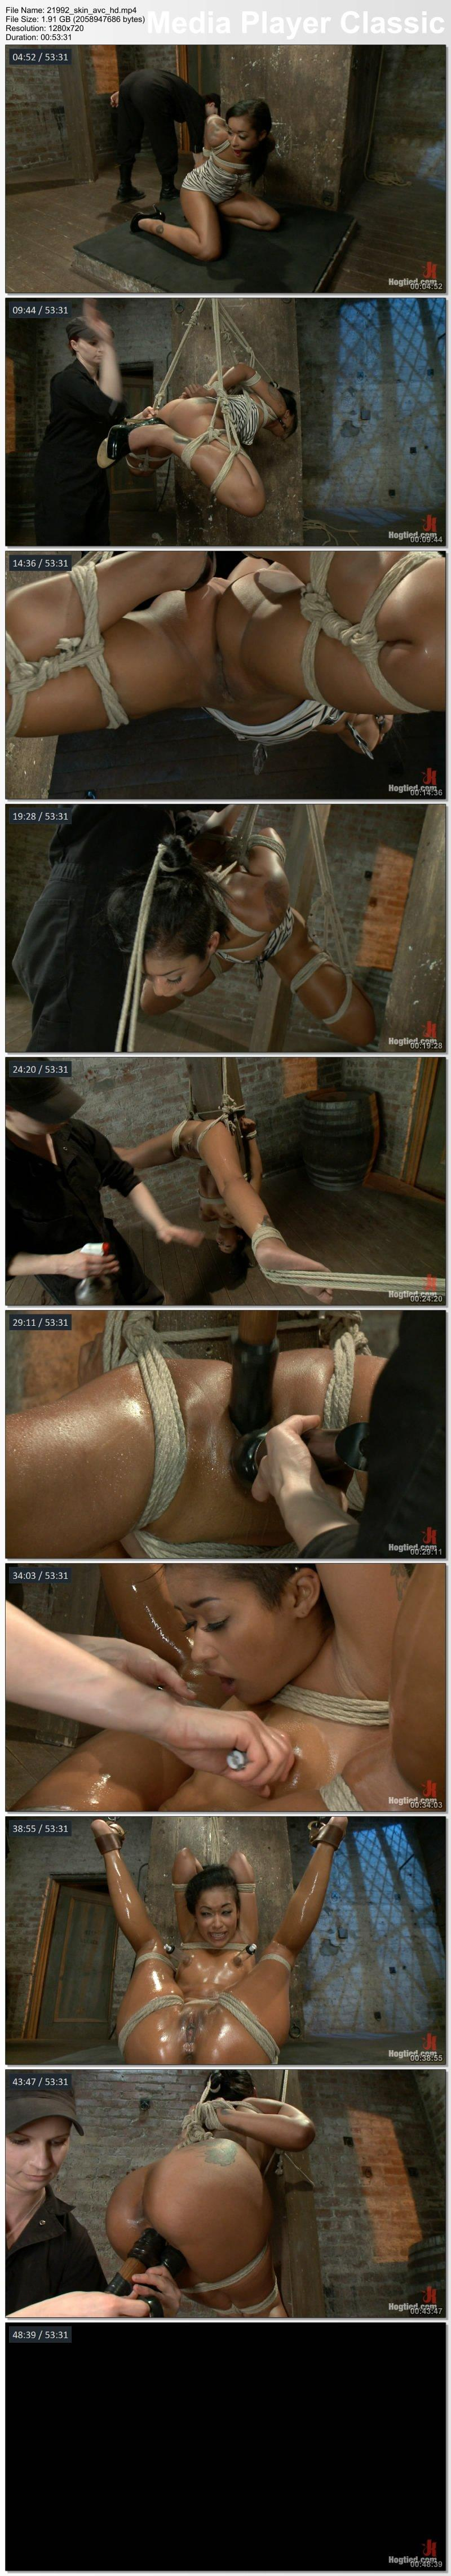 hogtied - Hot and Tight